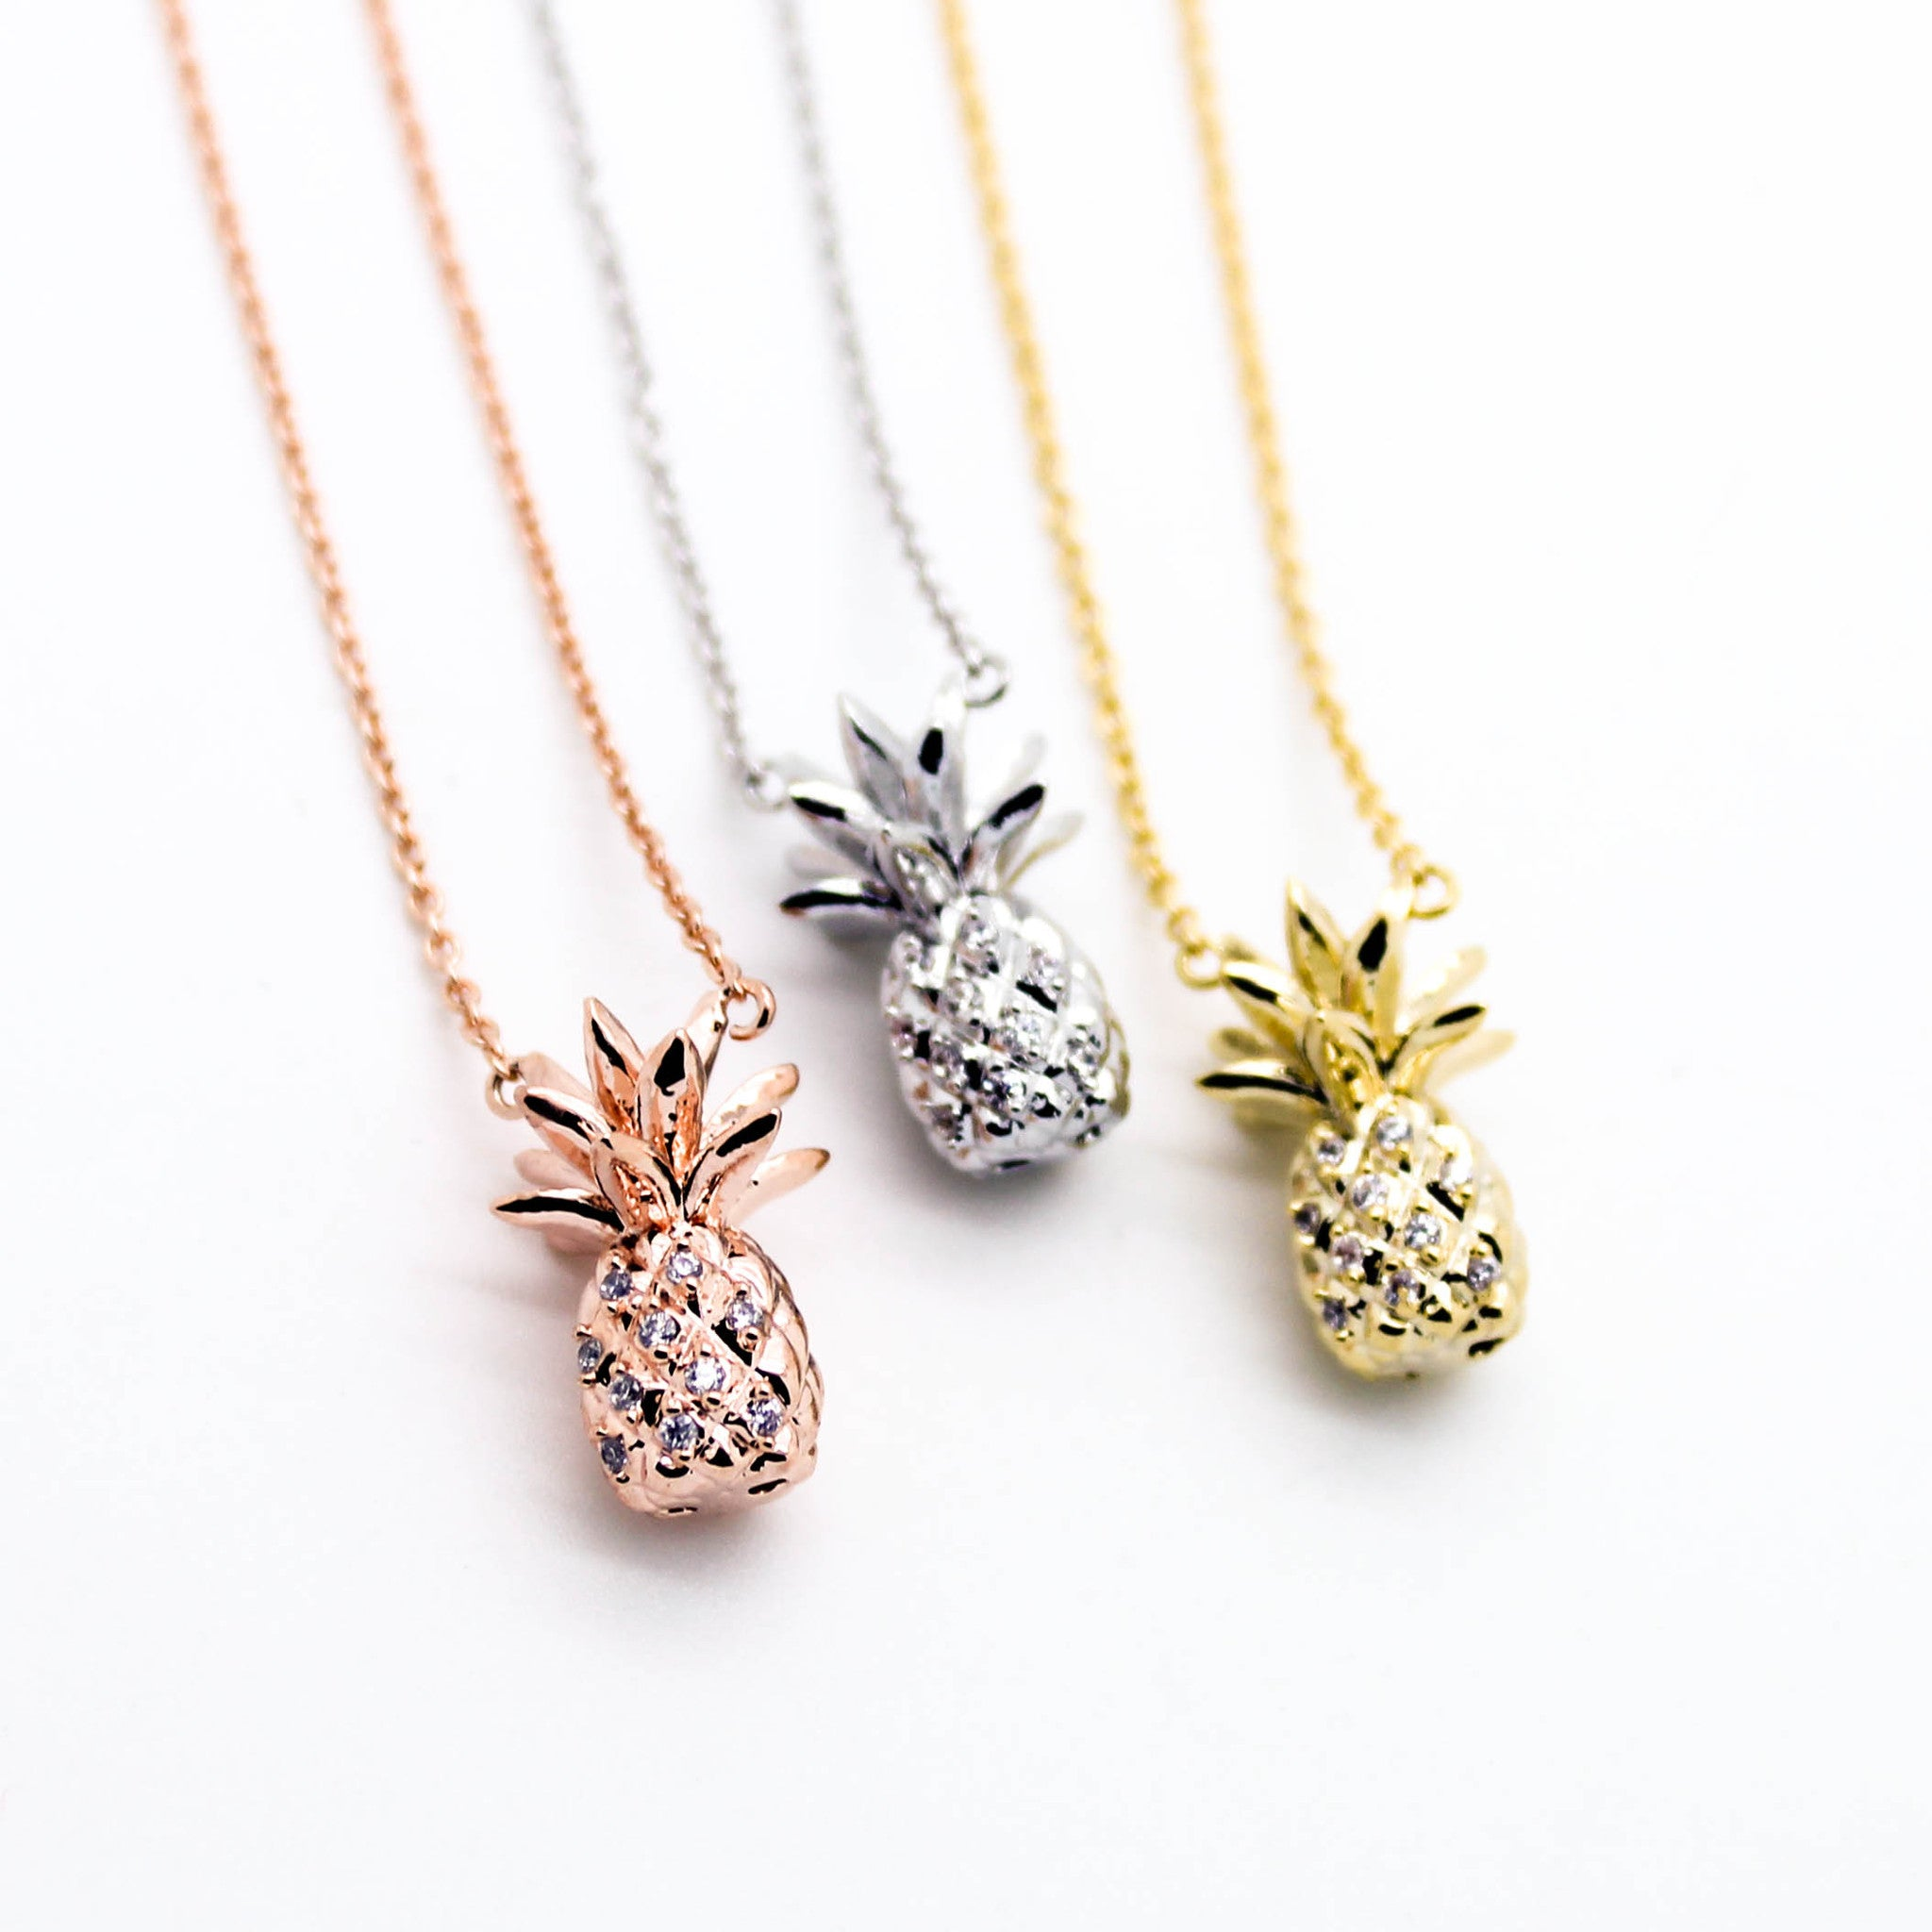 n necklace mother spice jugar products pearl pineapple of img